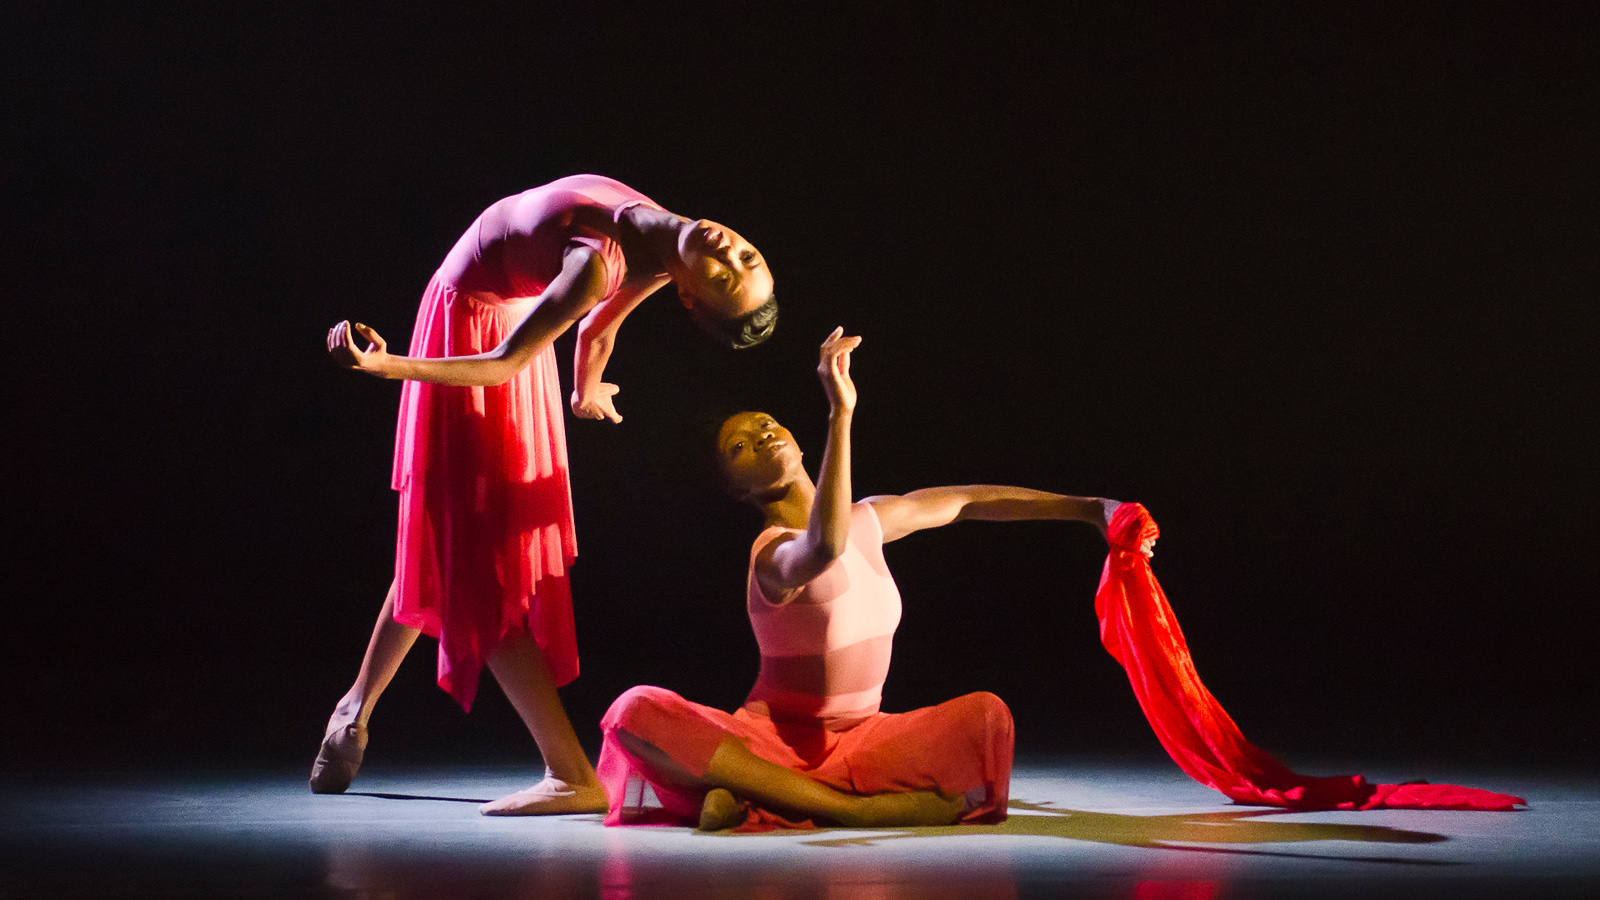 a history of alvin ailey american dance theater 60 reviews of alvin ailey american dance theater love this place for the culture  & the  i always appreciated the history and ongoing work of alvin ailey and.